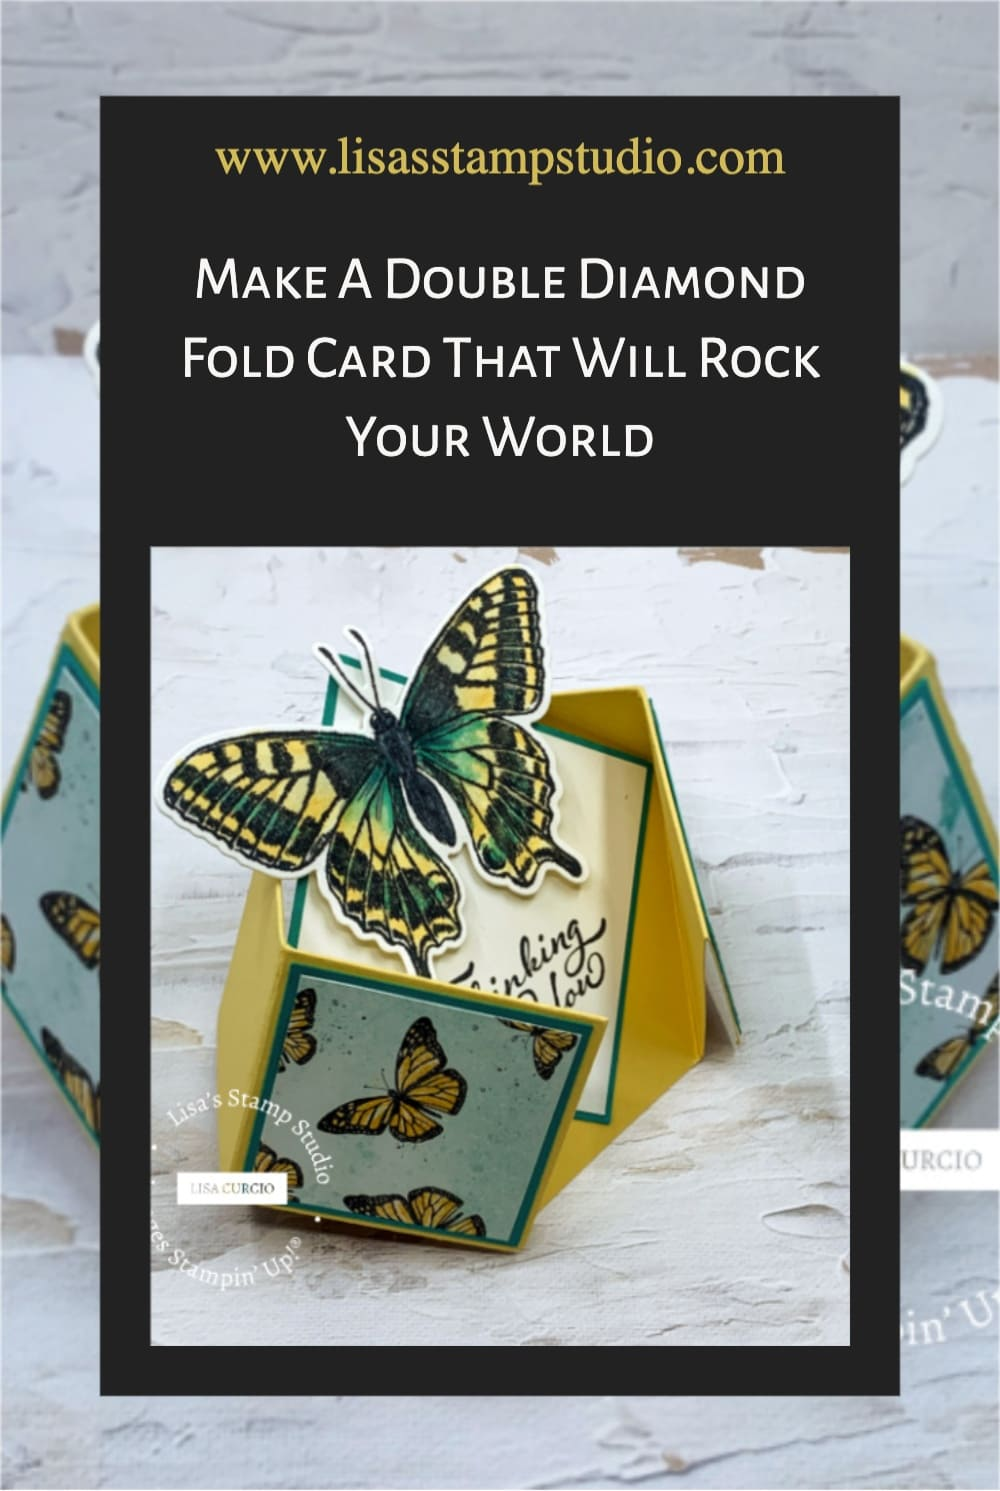 Save this double diamond fold card to your Pinterest board for future reference.